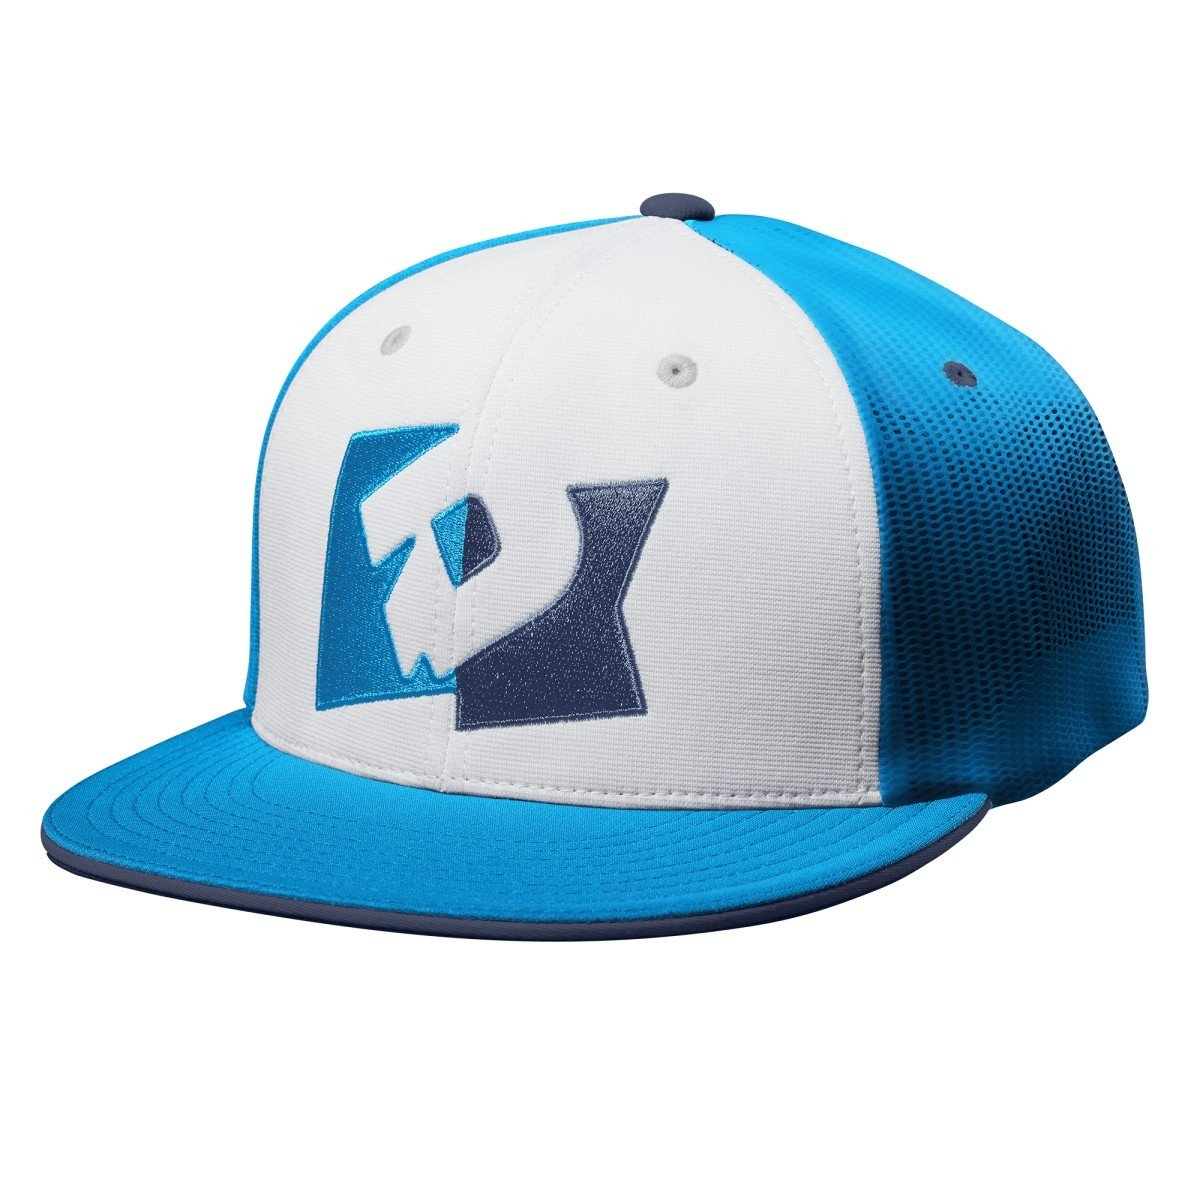 DeMarini D Pennant Flex Fit Hat - White Blue